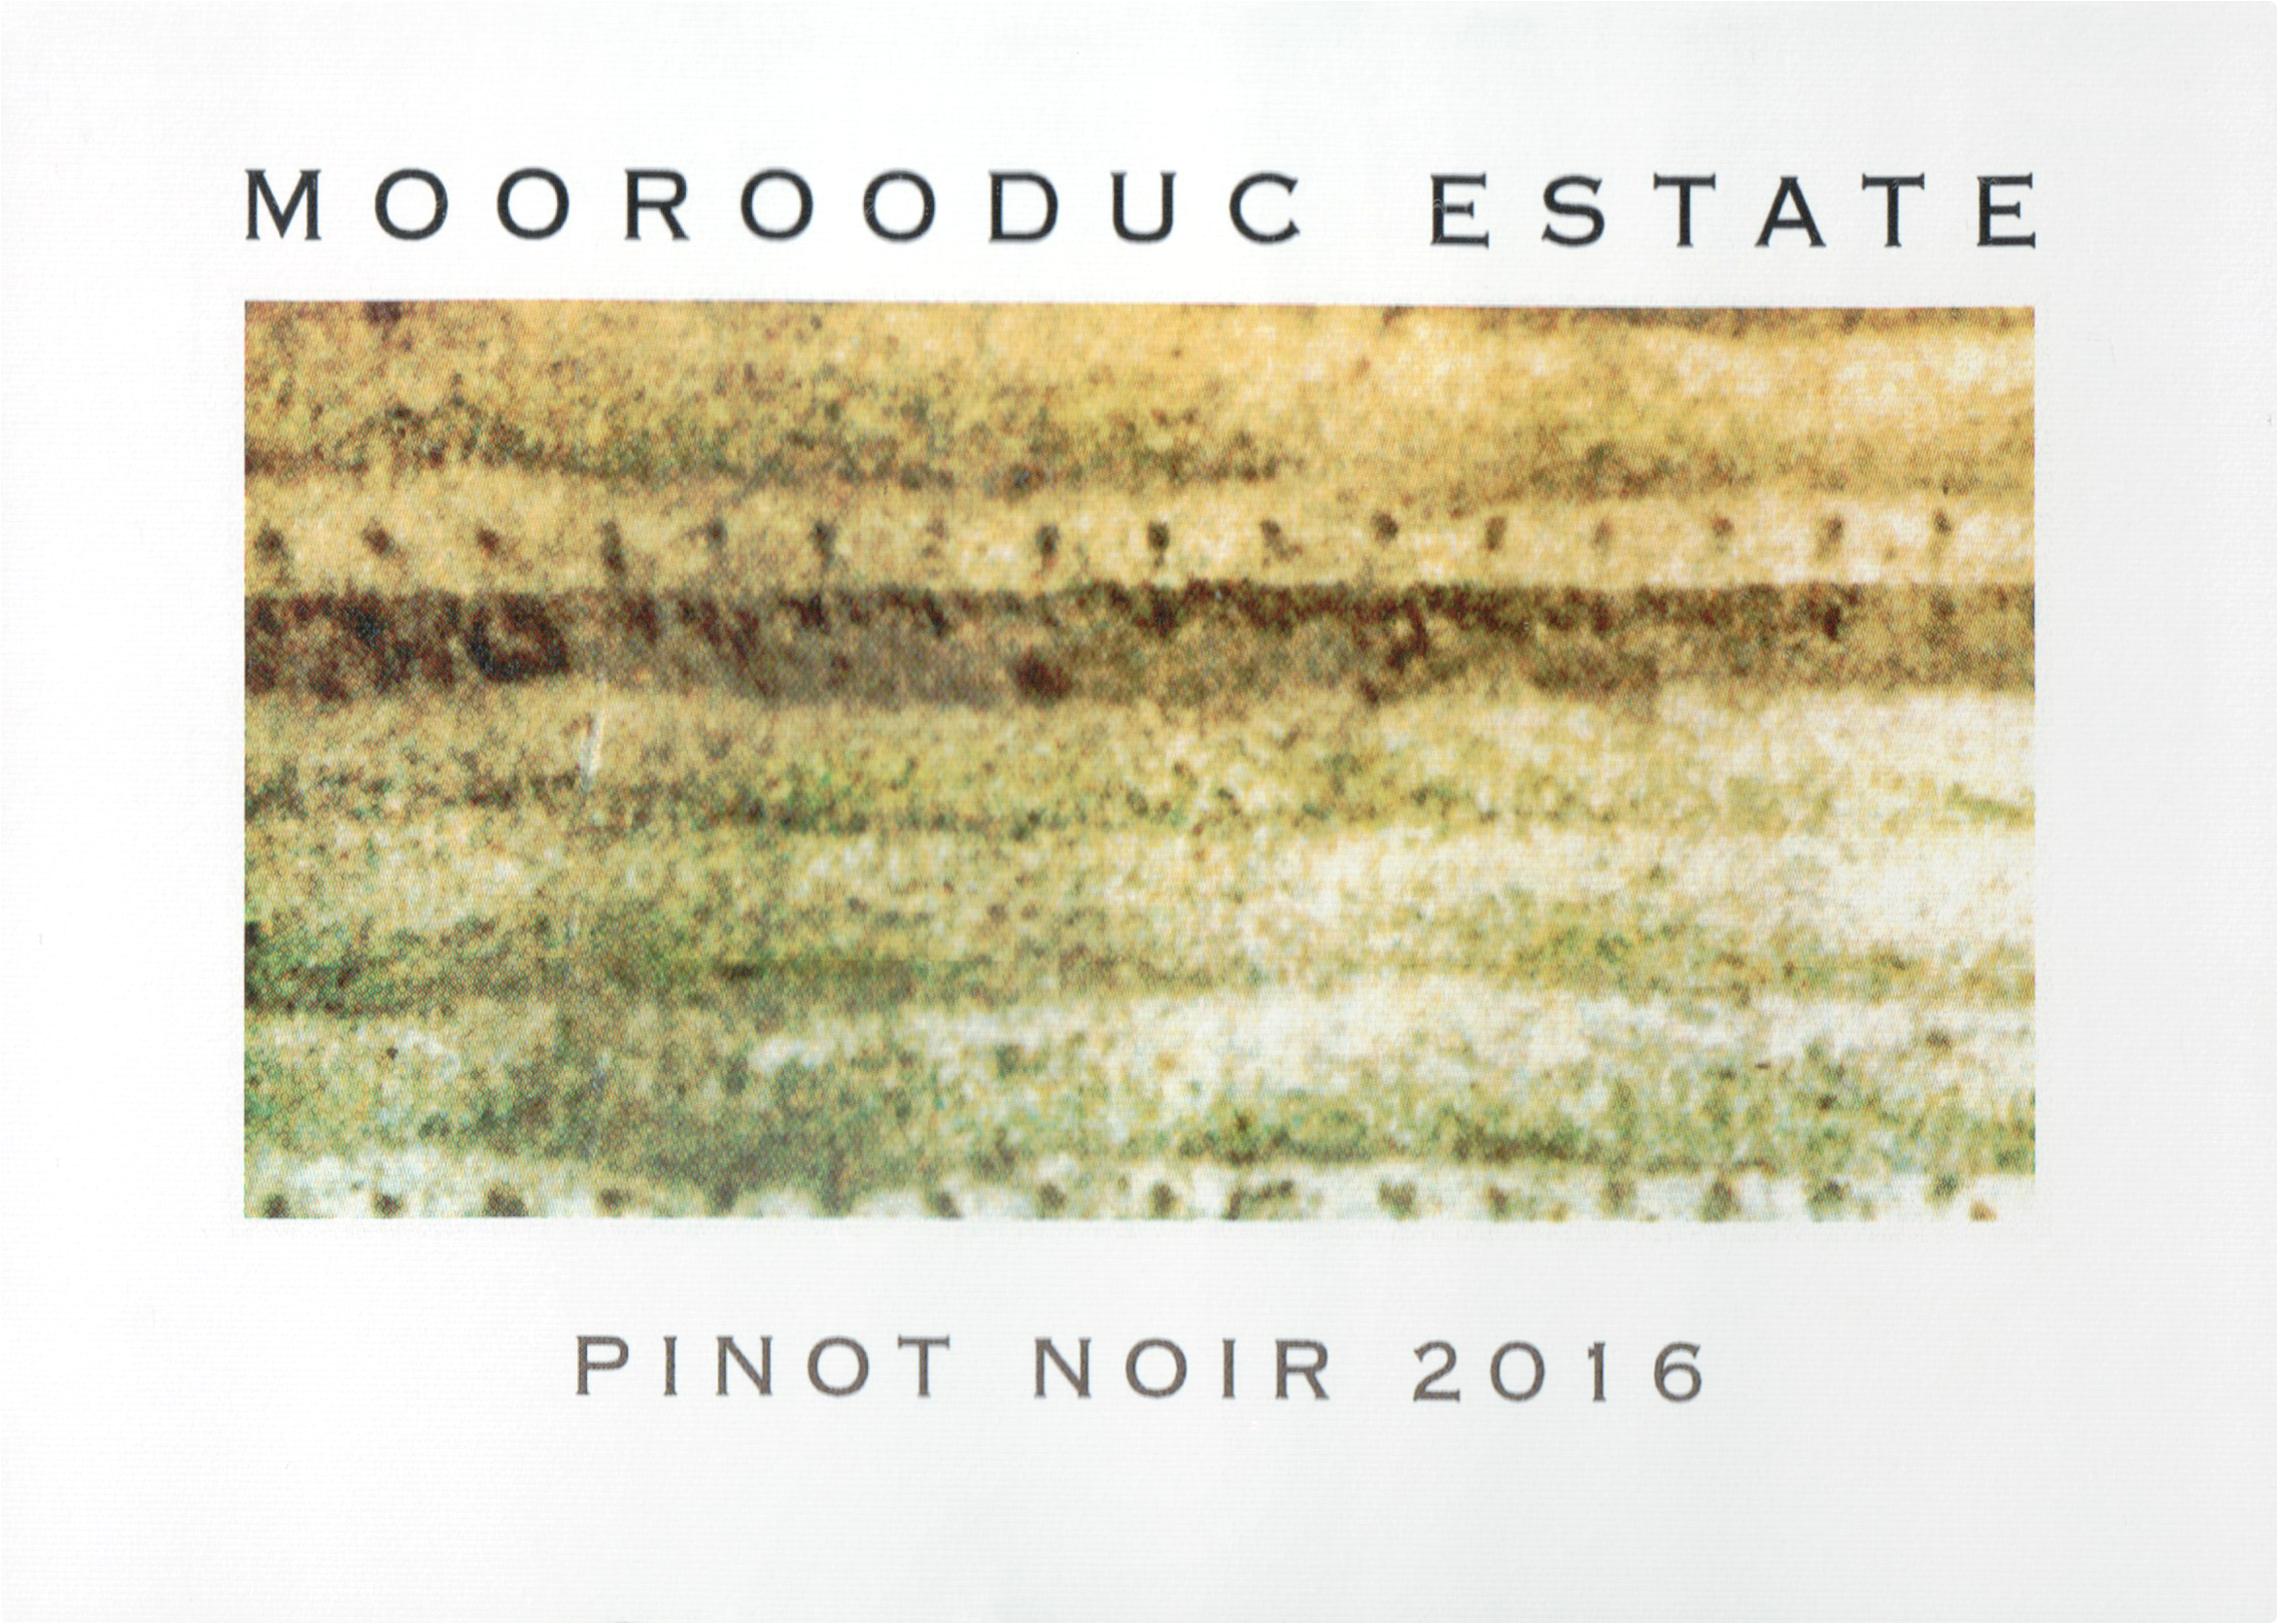 Moorooduc Estate Mornington Peninsula Pinot Noir 2016